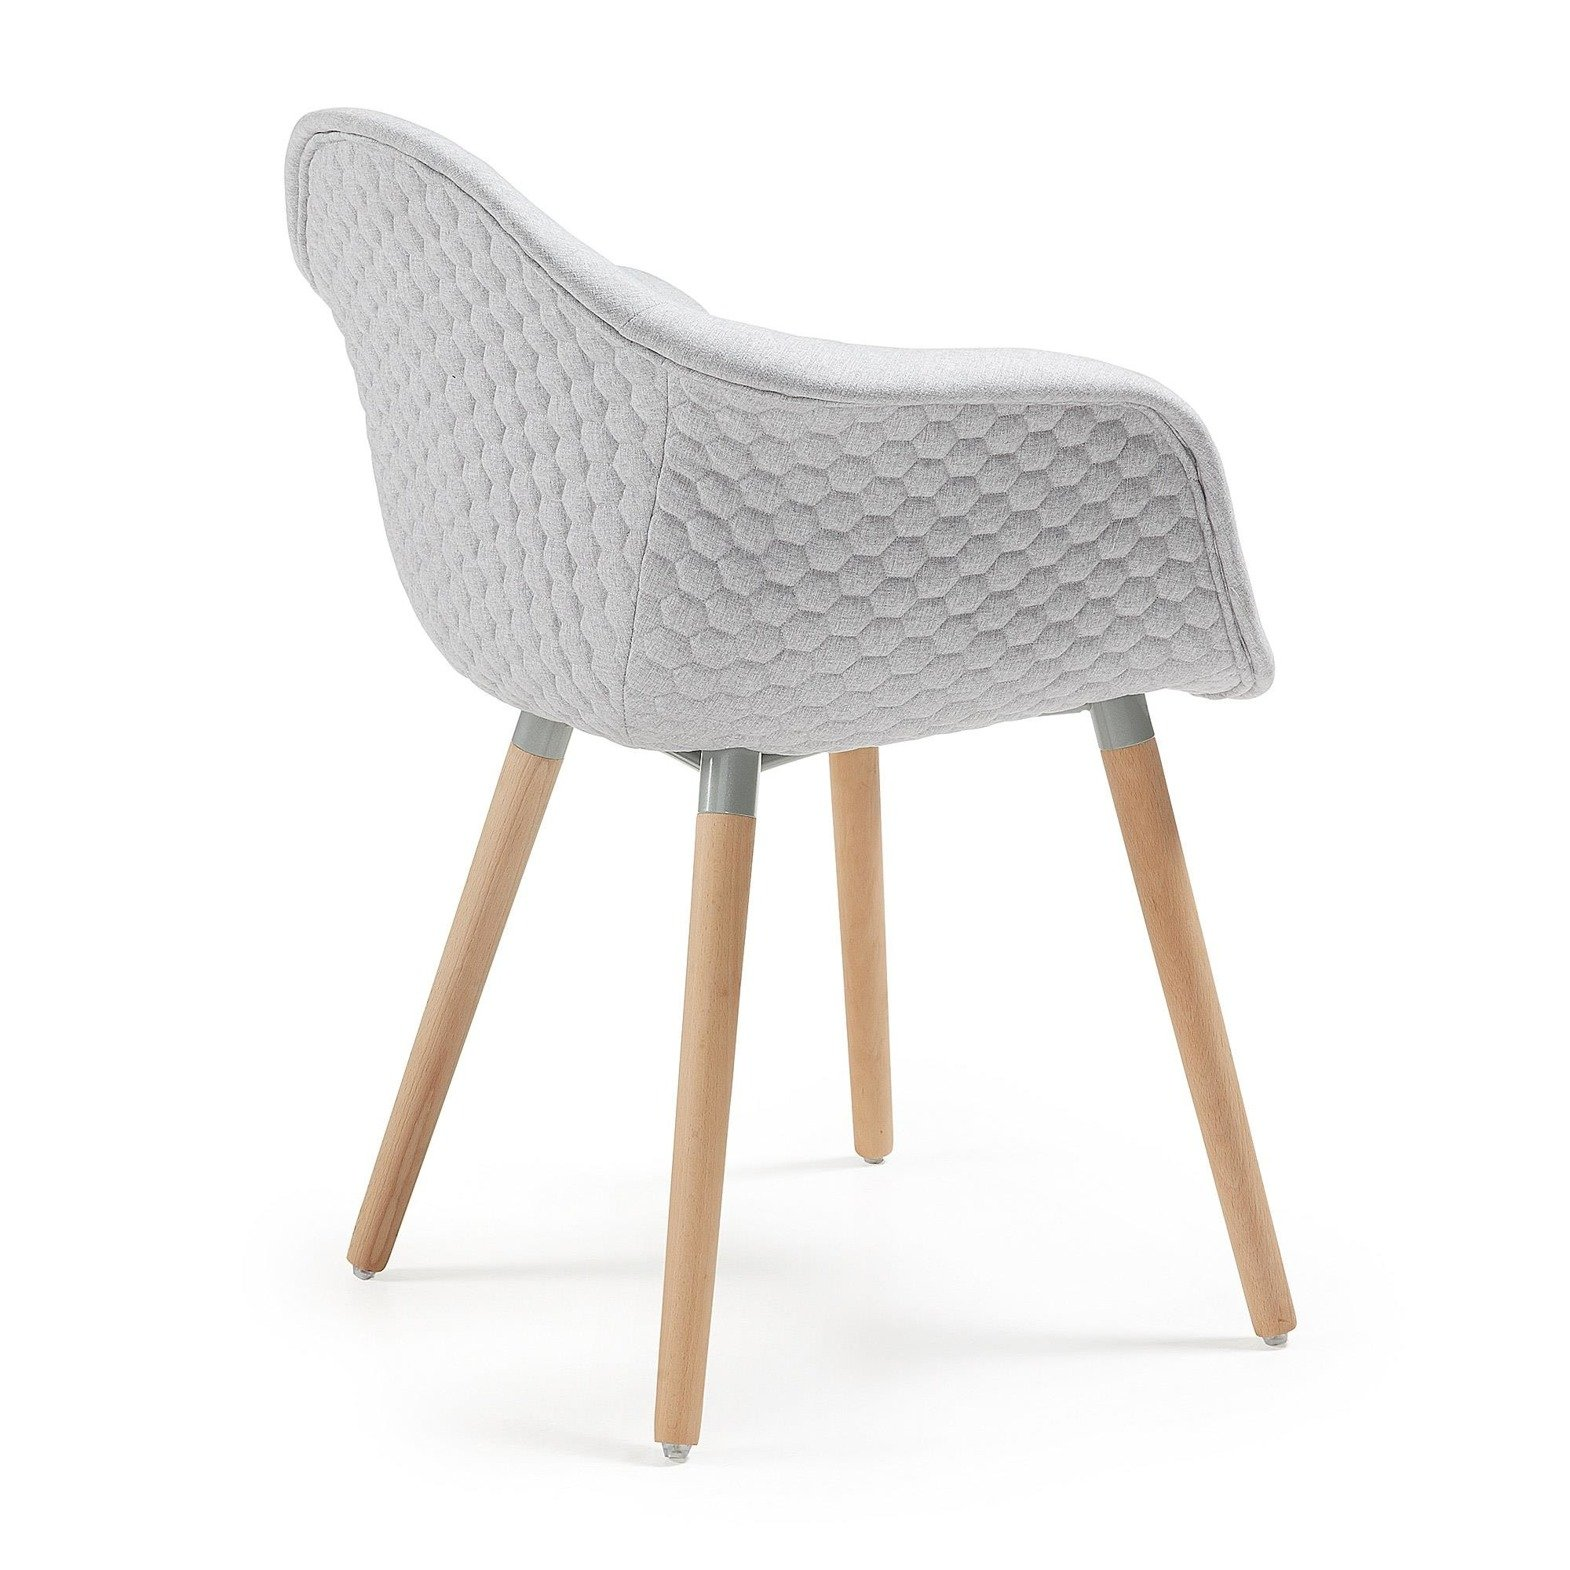 LaForma :: KENNA Armchair natural wood fabric light grey